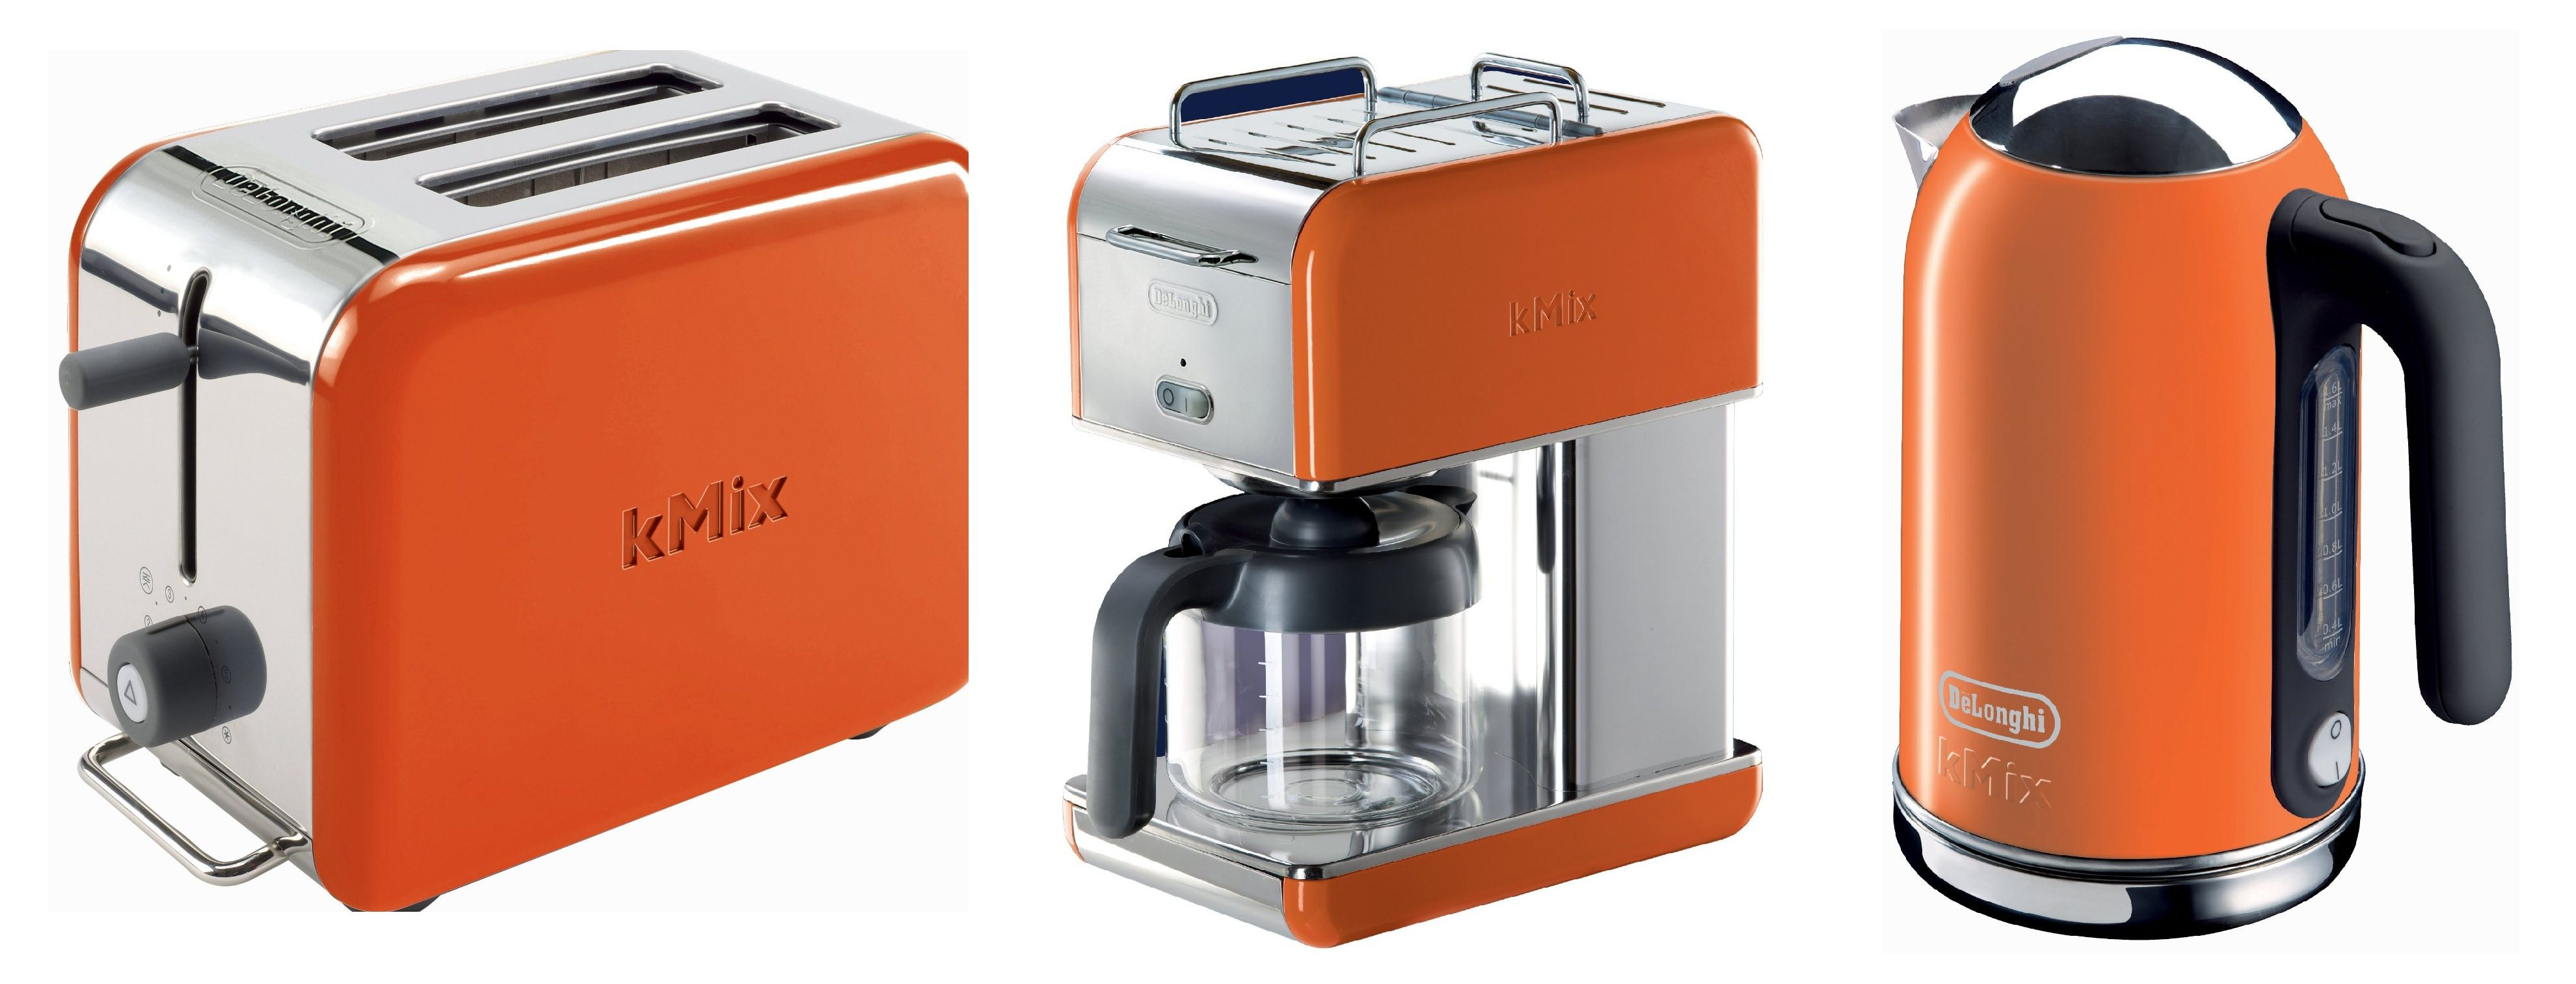 The Moment I Laid Eyes On These Colorful Kitchen Appliances From Delonghiu0027s  KMix Collection, I